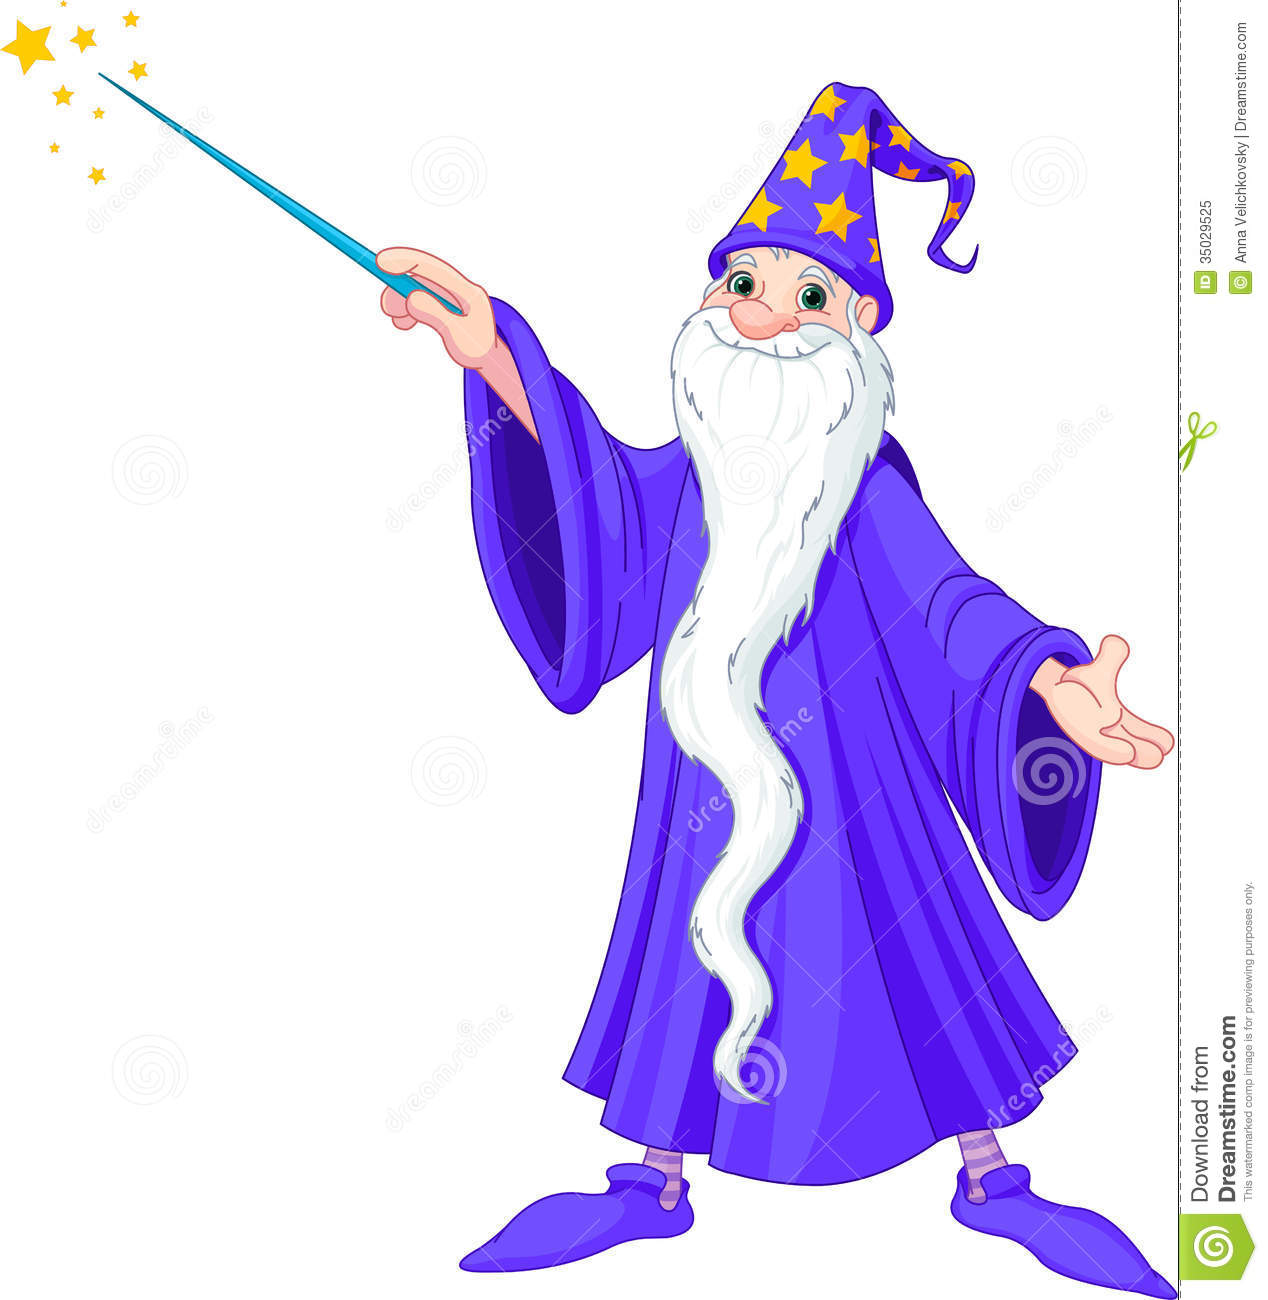 Cartoon wizard royalty free stock photo image 35029525